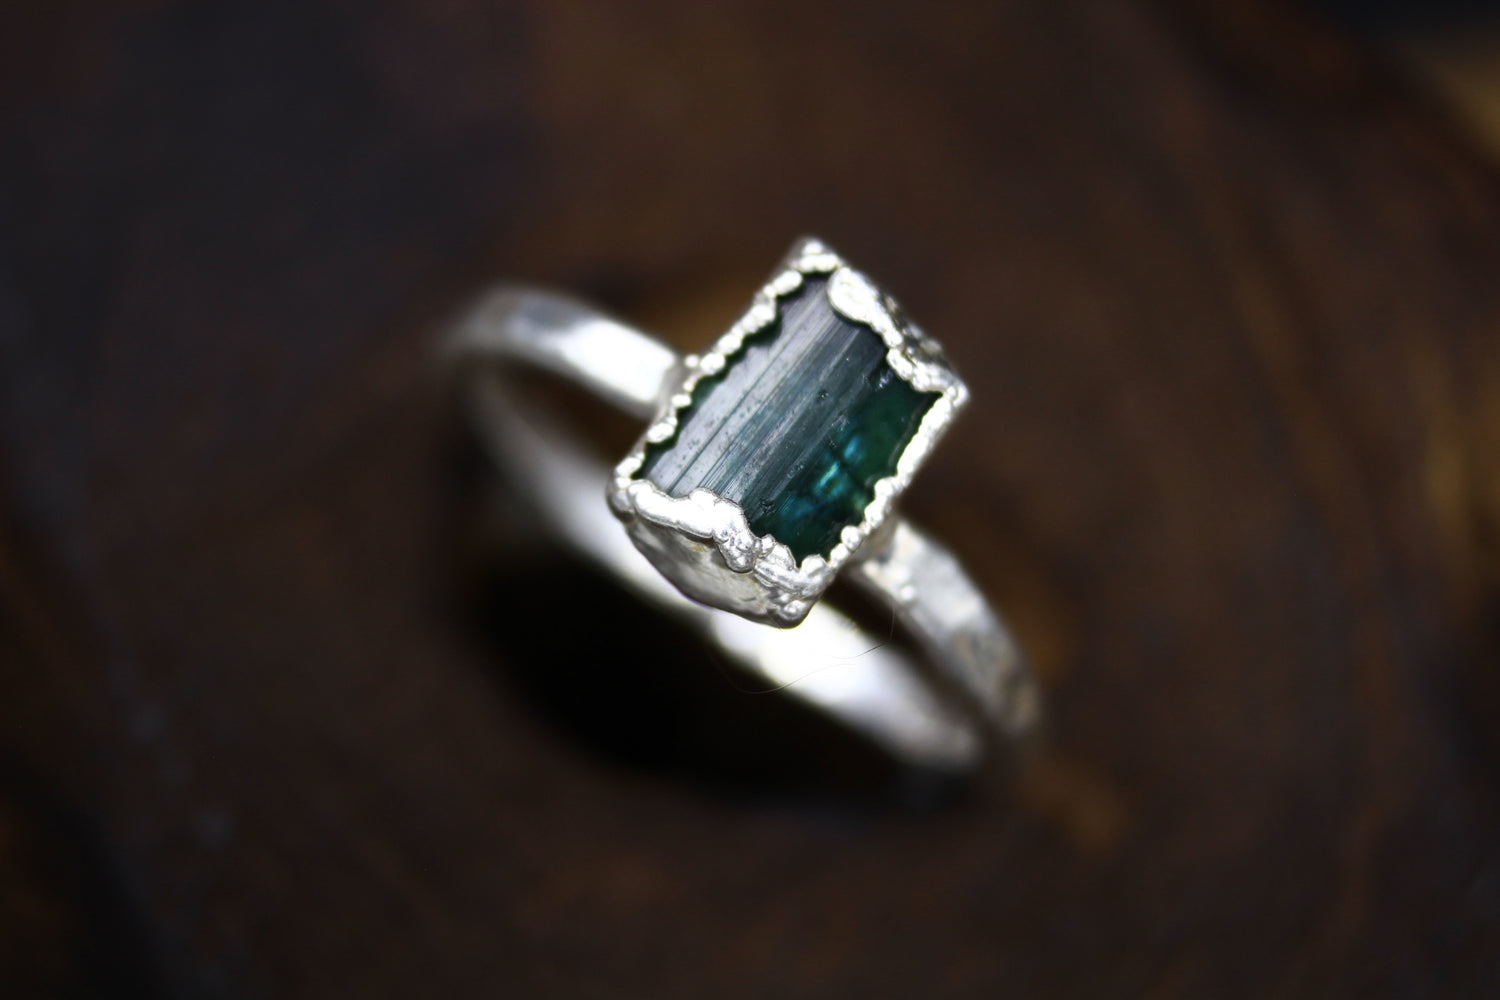 Green Verdelite Tourmaline Ring in Silver